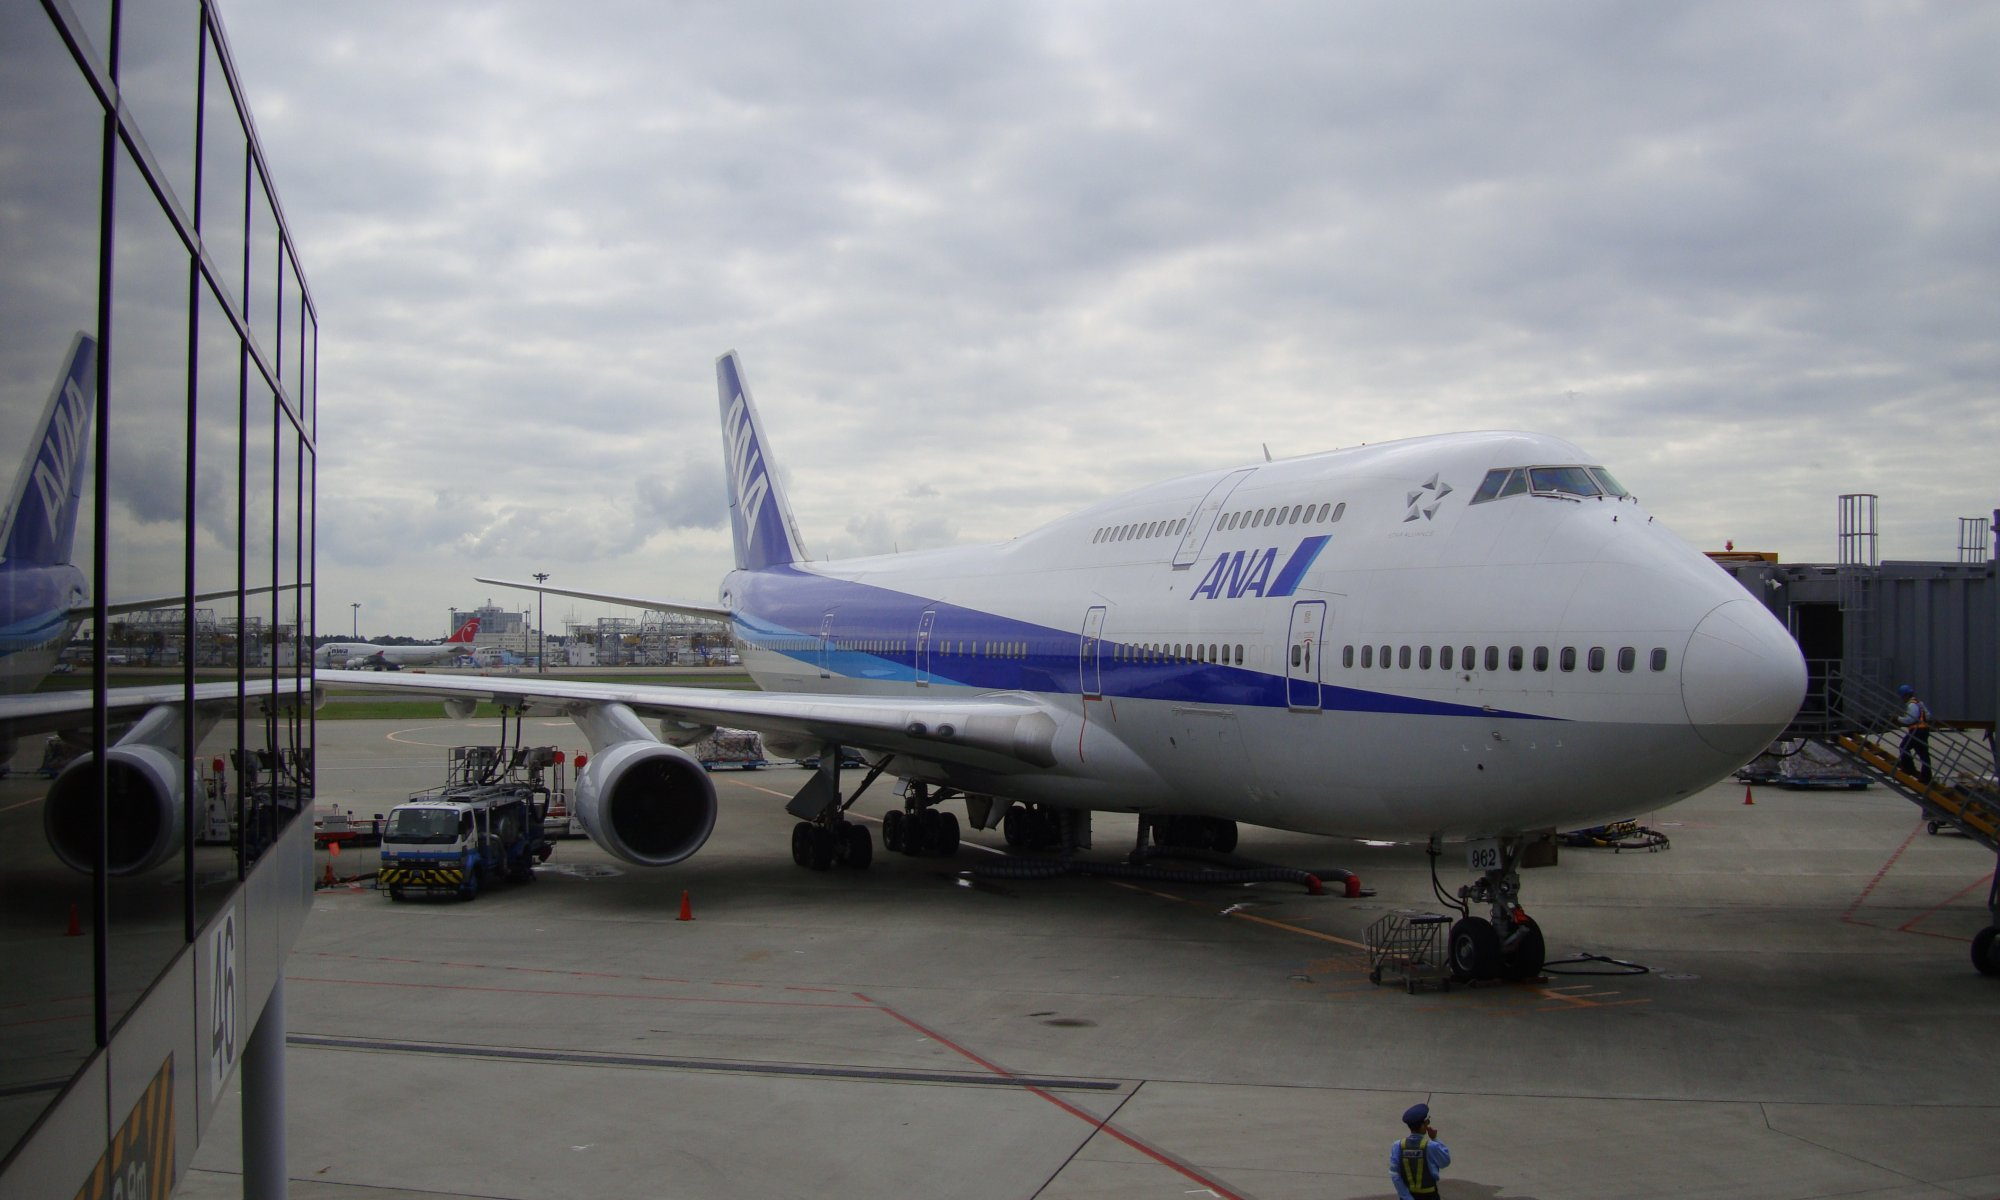 Tōkyō Narita International Airport (NRT), Japan